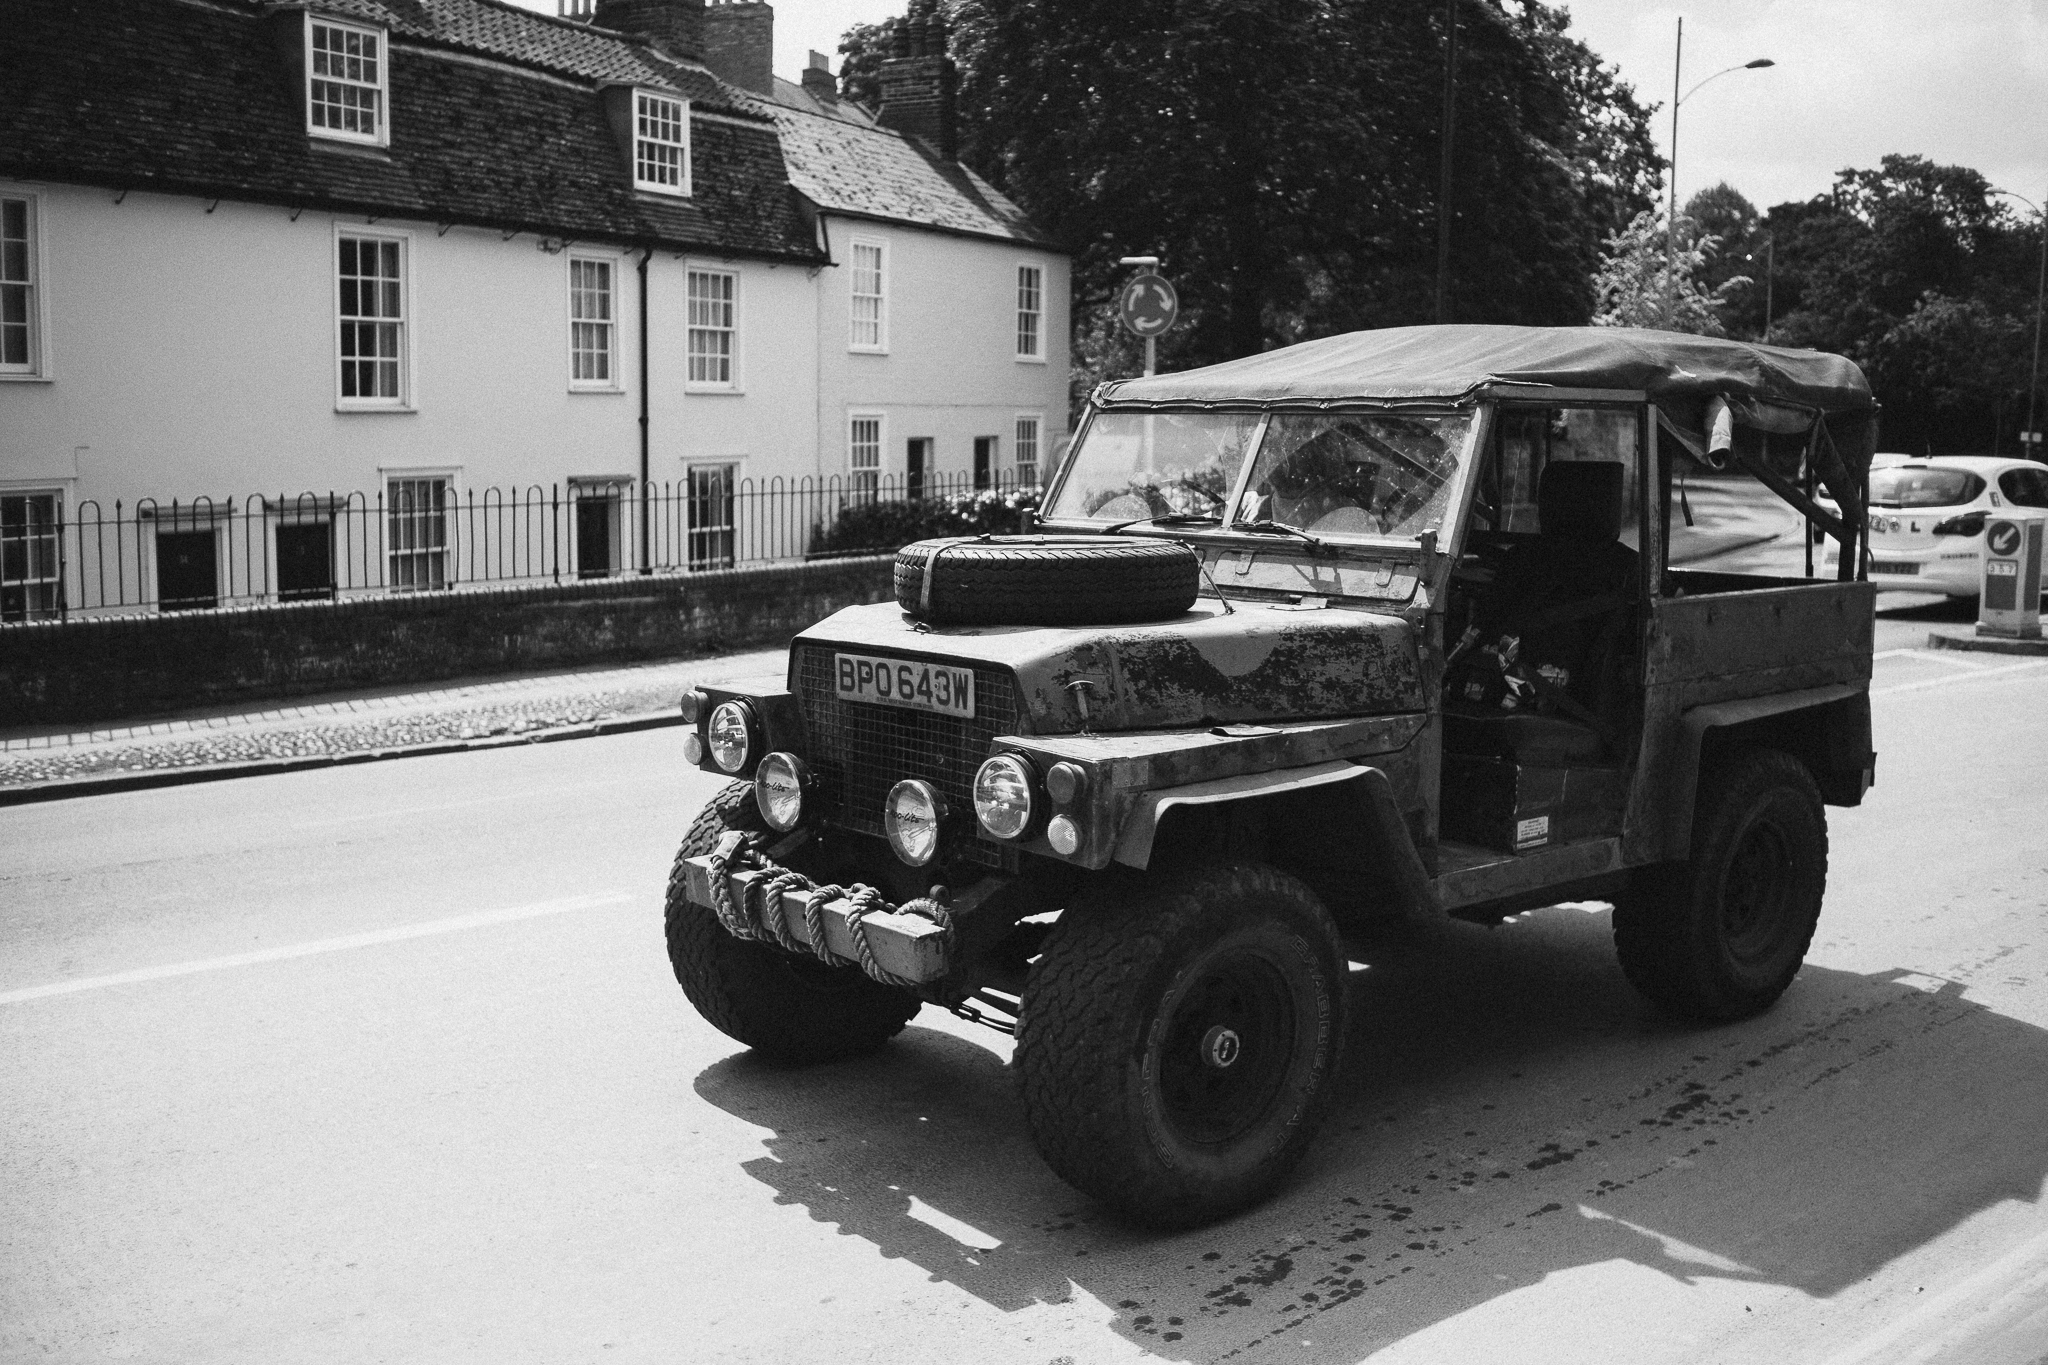 Land Rover Lightweight, based on the Series III